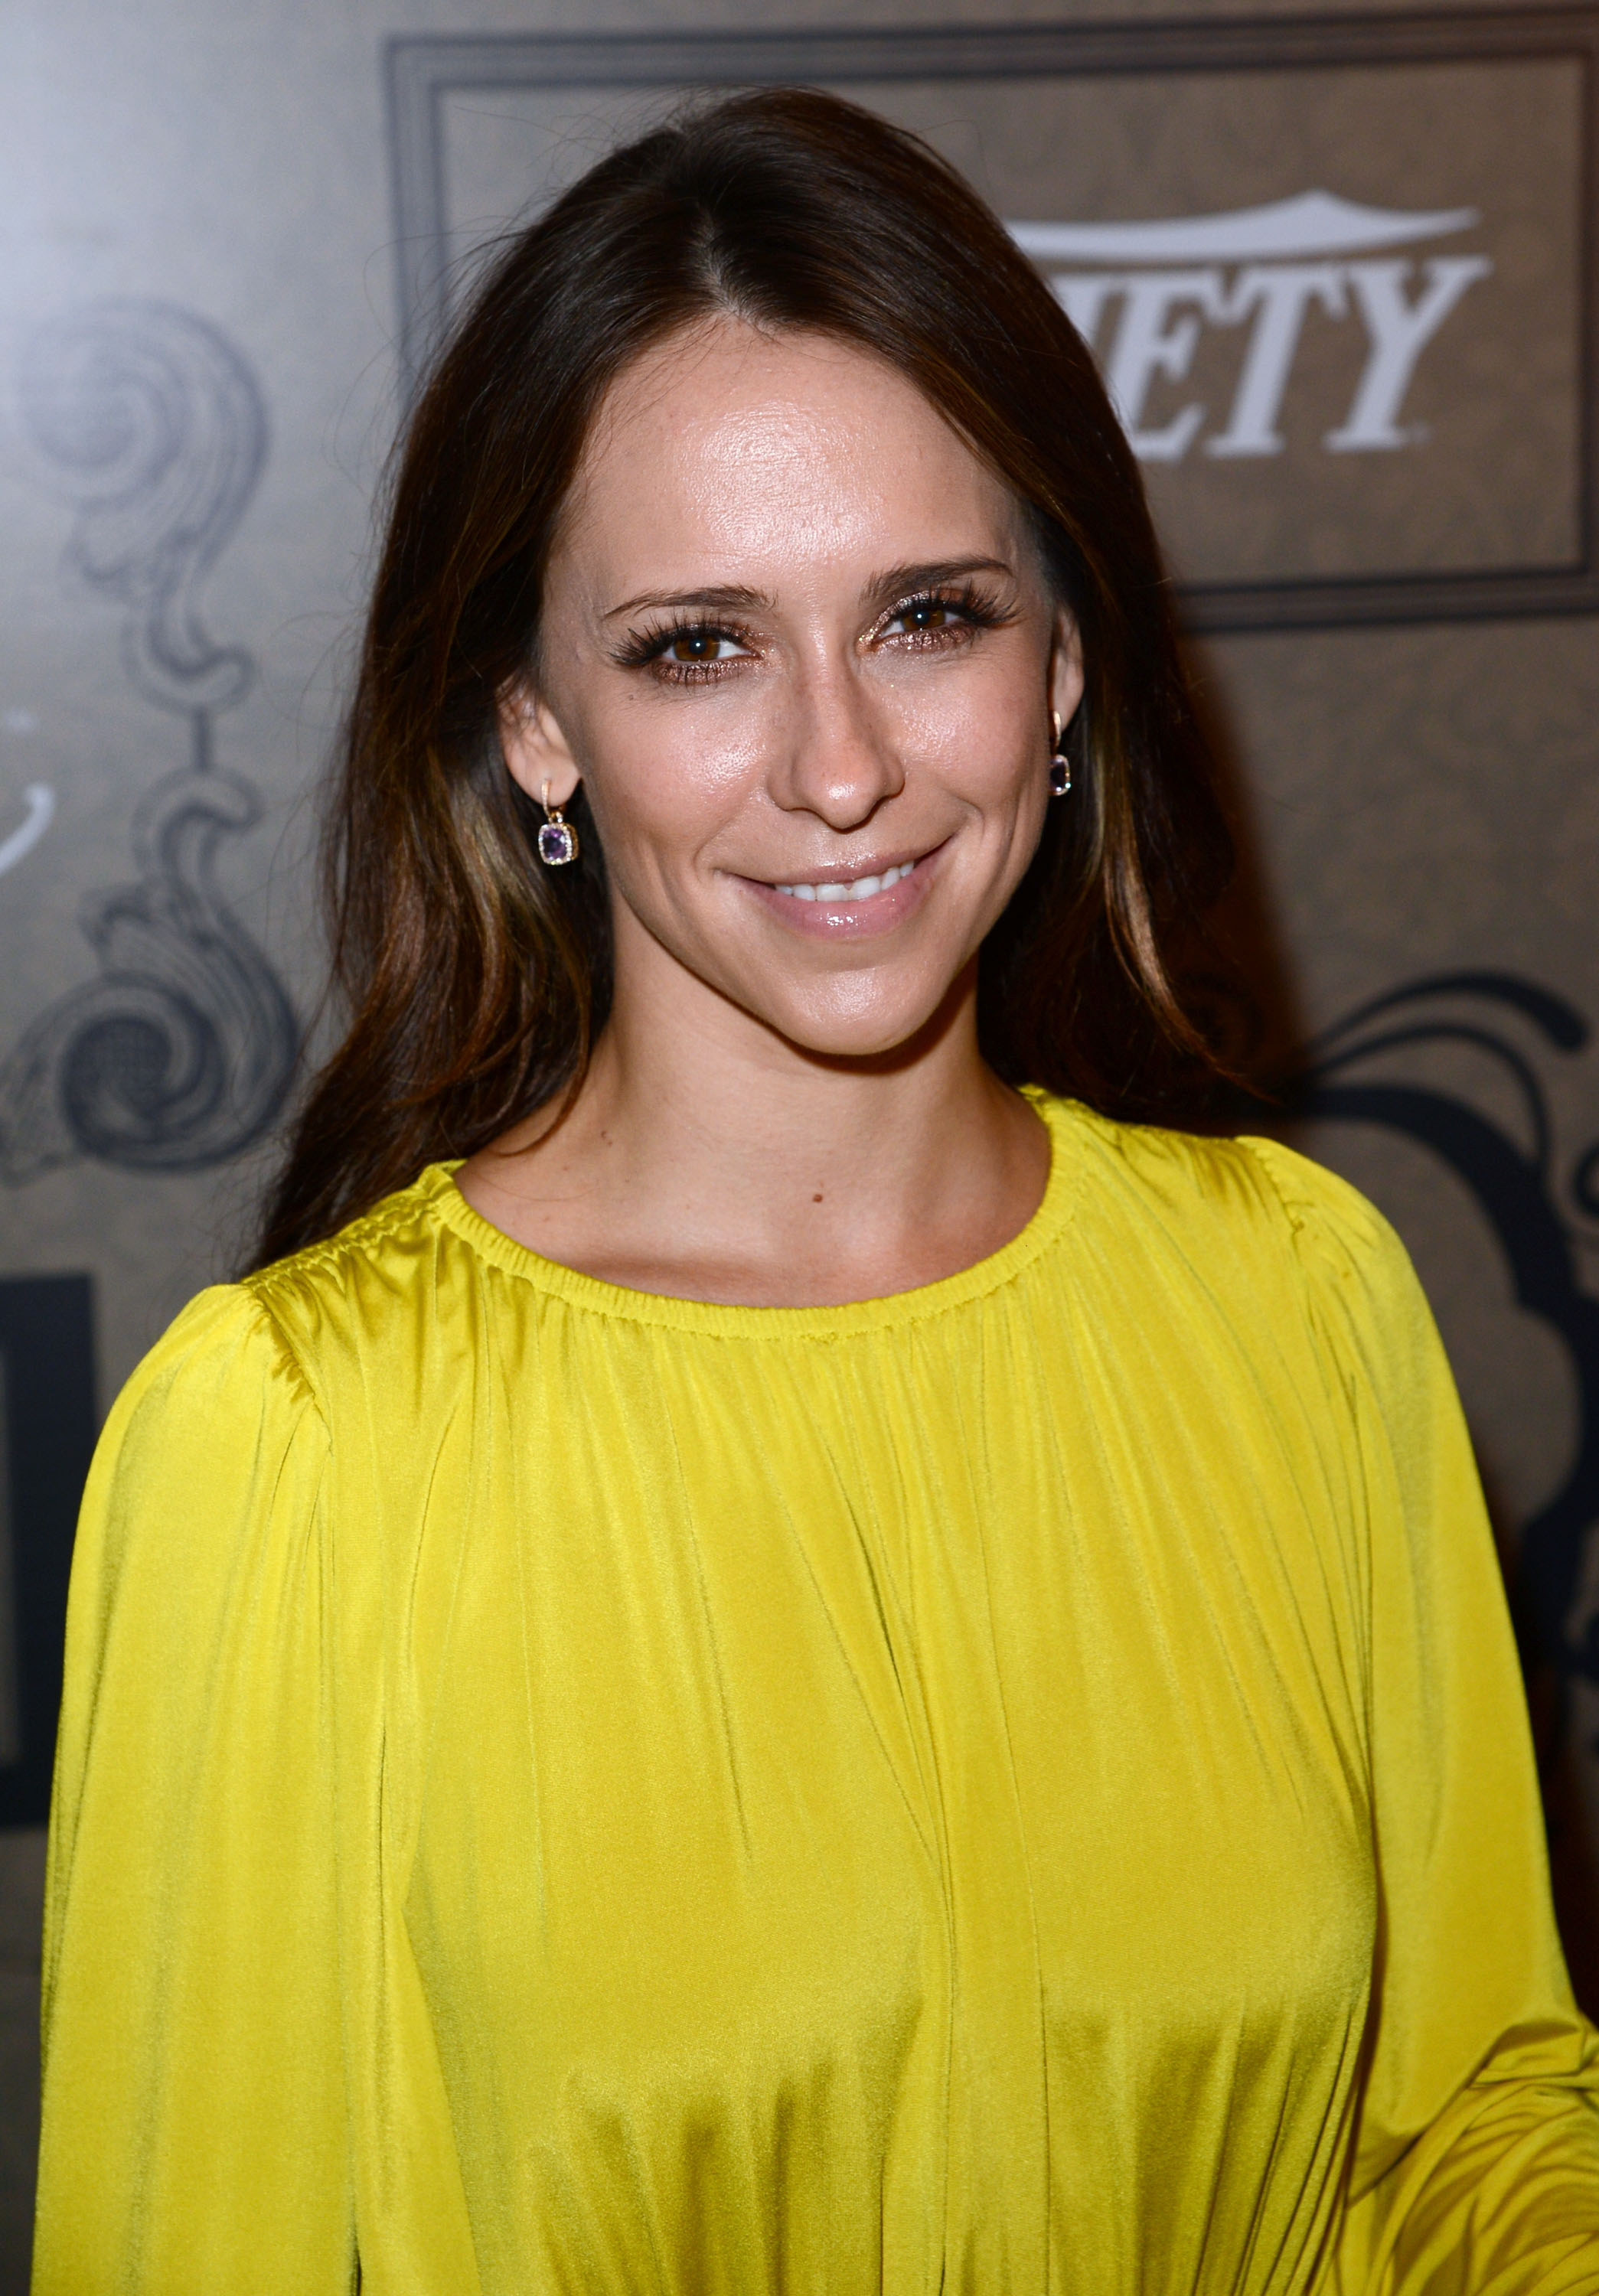 Actress Jennifer Love Hewitt arrives at Variety's 4th Annual Power of Women Event Presented by Lifetimeat the Beverly Wilshire Four Seasons Hotel on October 5, 2012 in Beverly Hills, California.